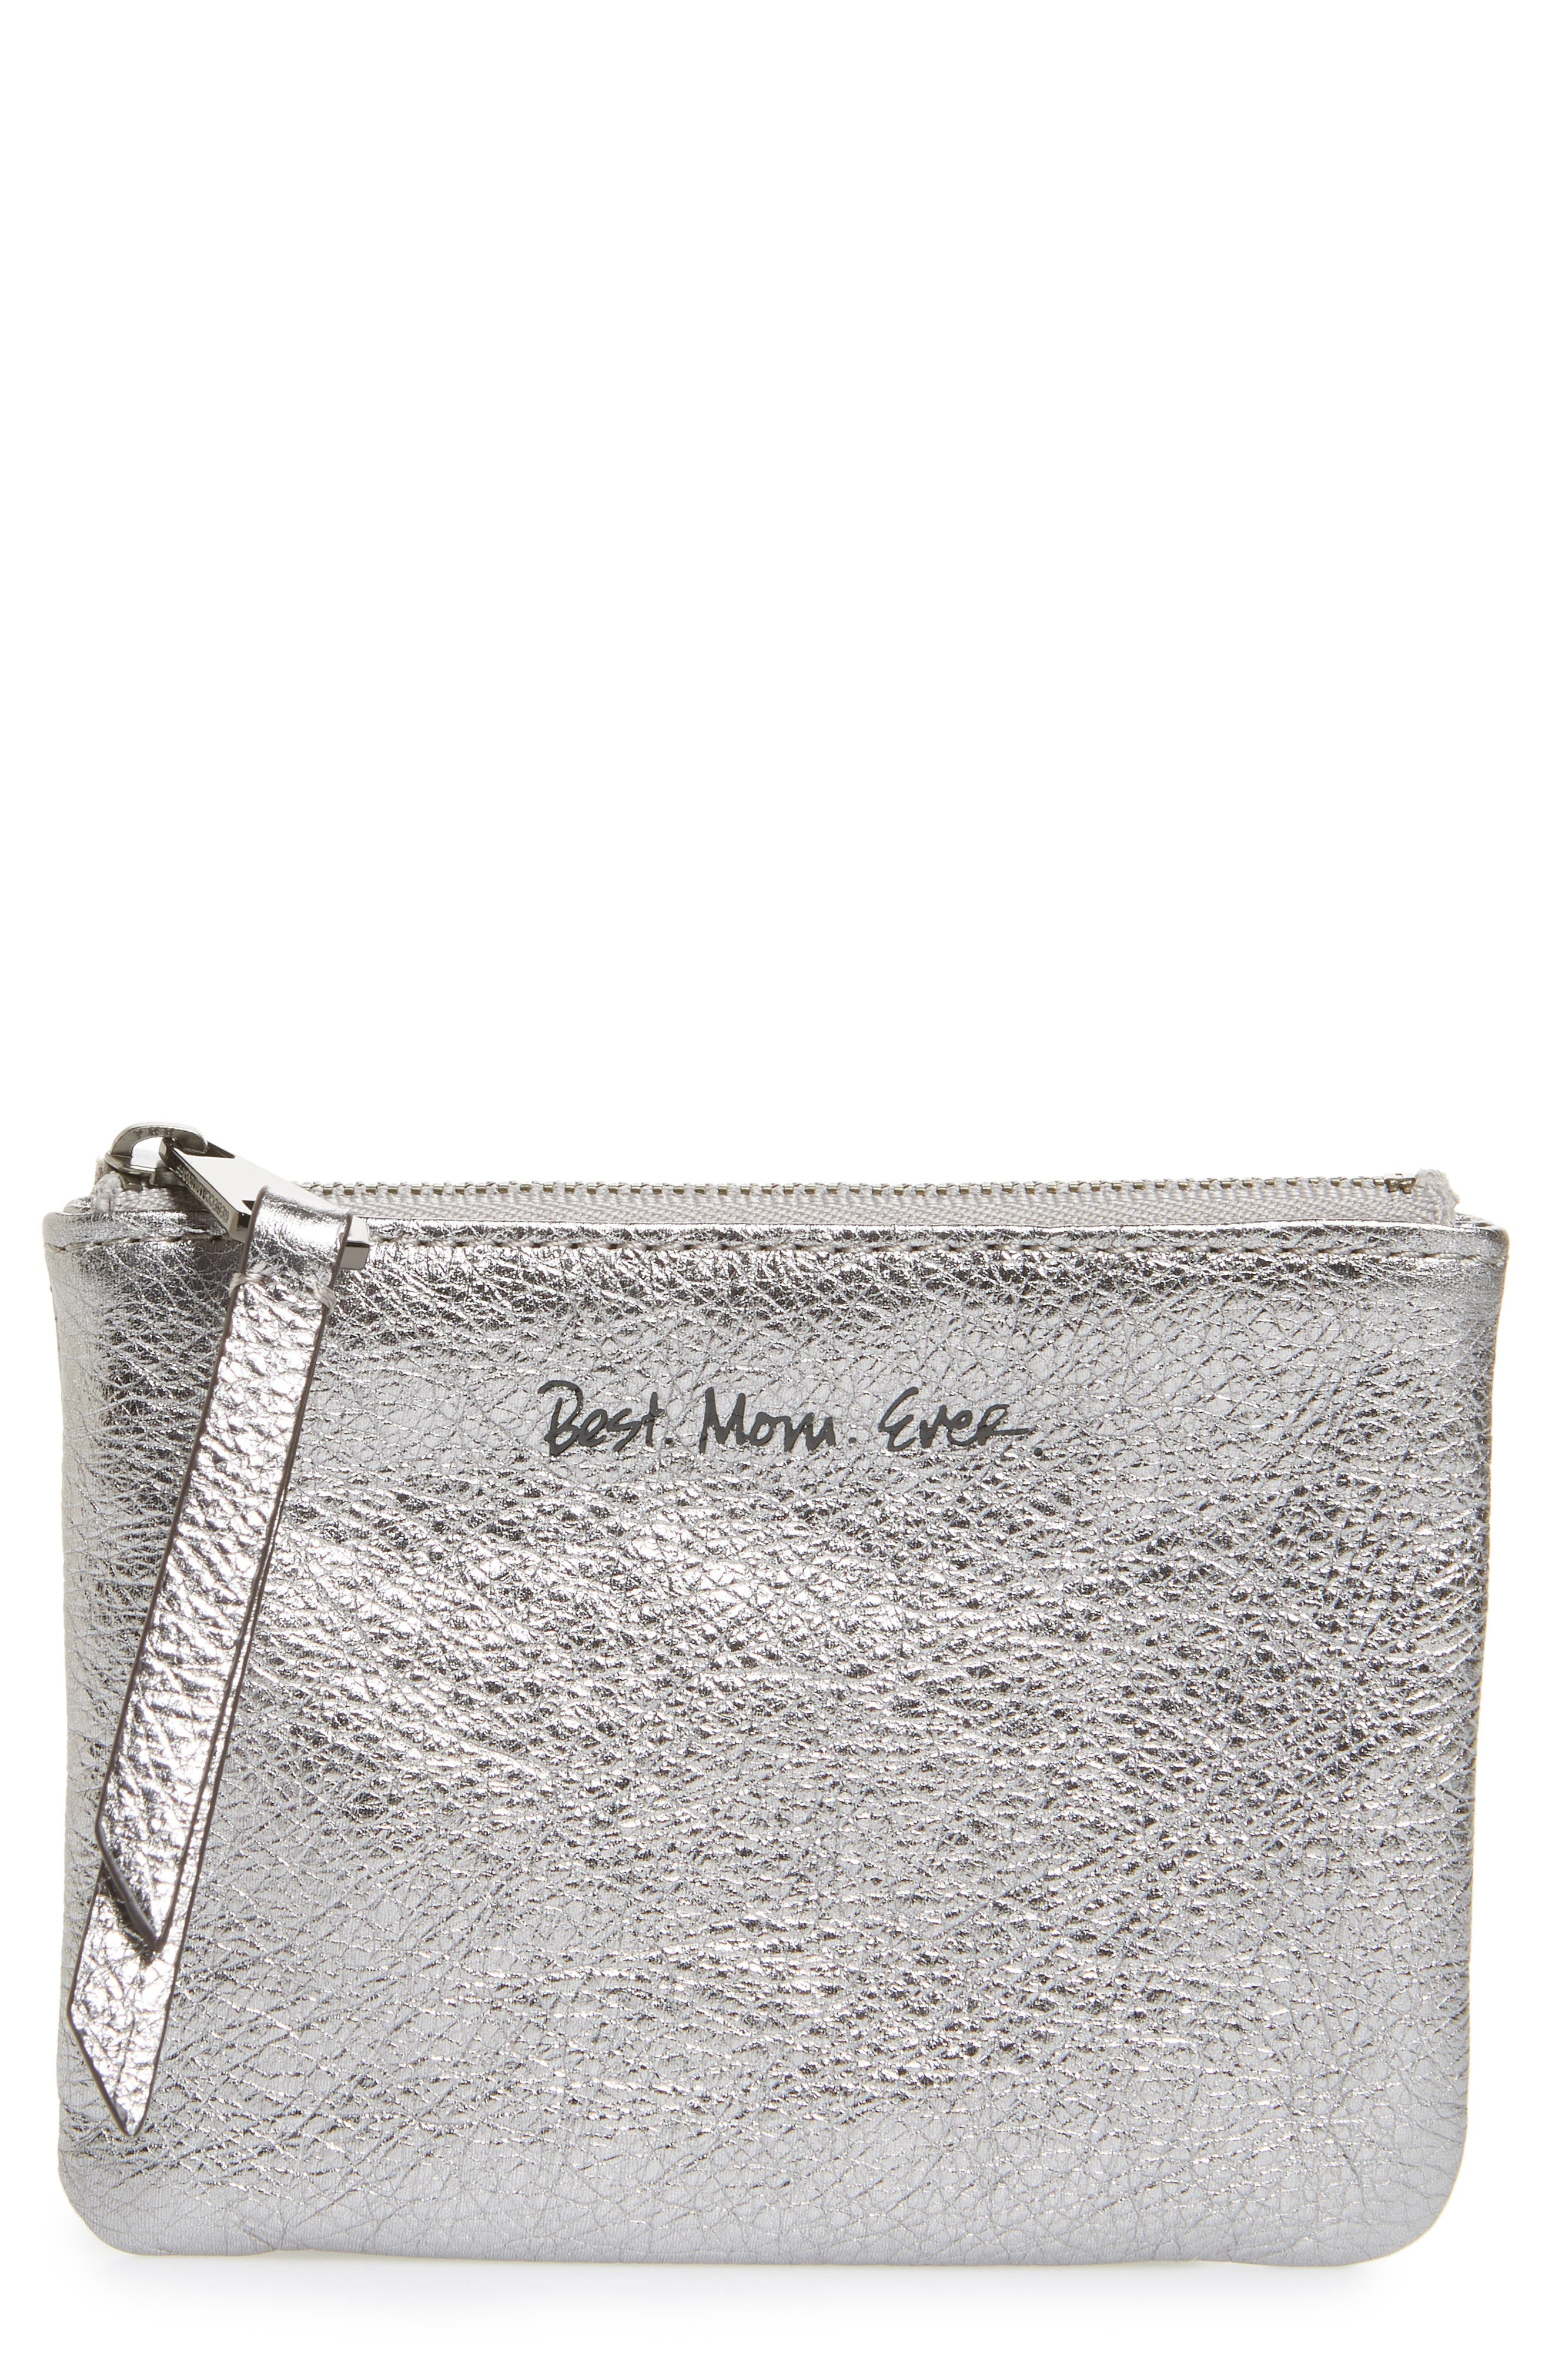 Betty - Best Mom Ever Leather Pouch,                         Main,                         color, Anthracite